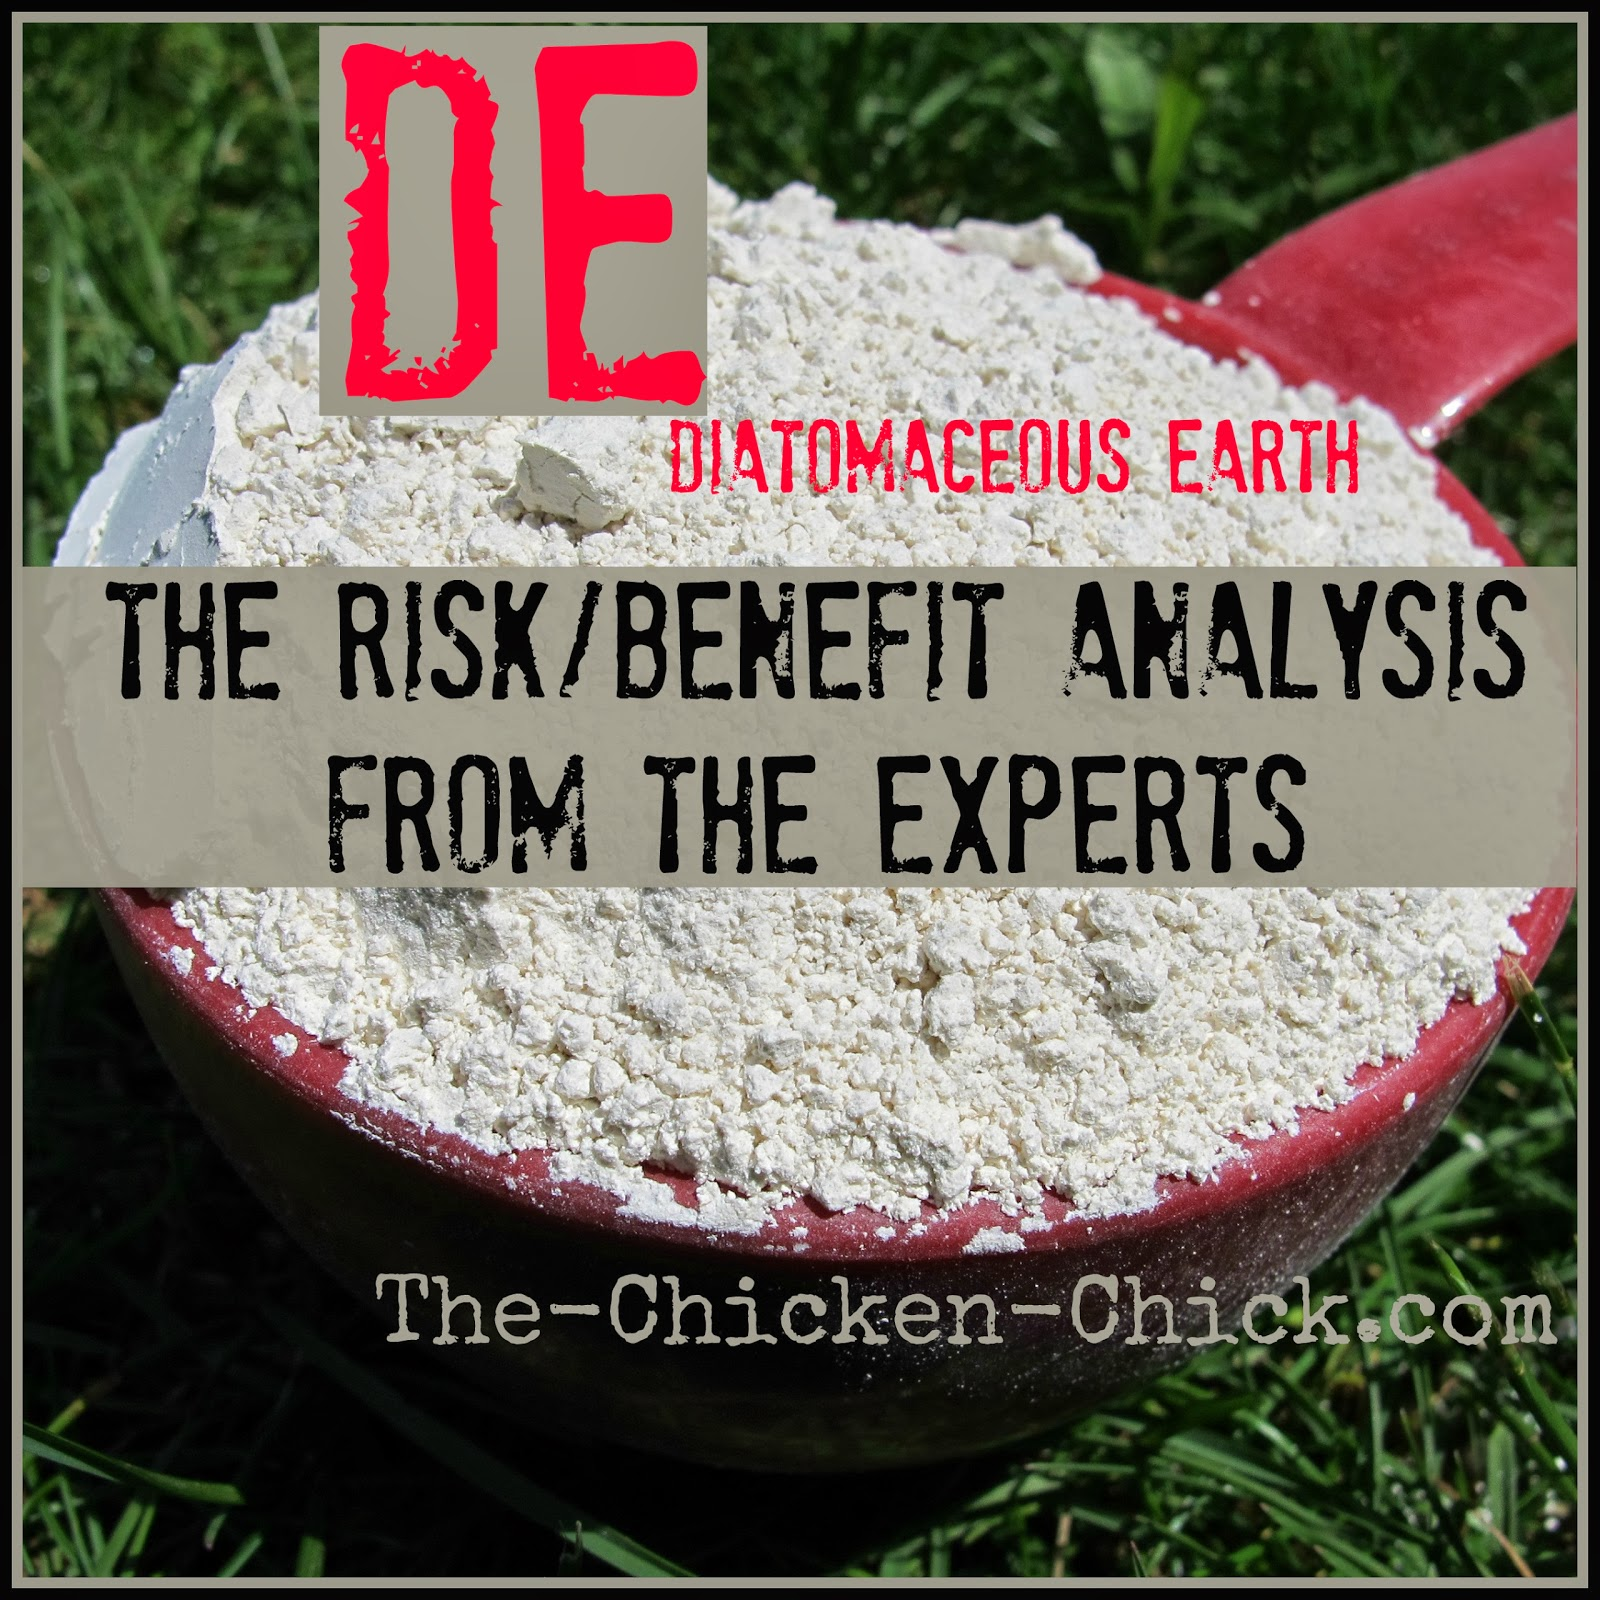 DE, Diatomaceous earth- the risks as discussed by two experts